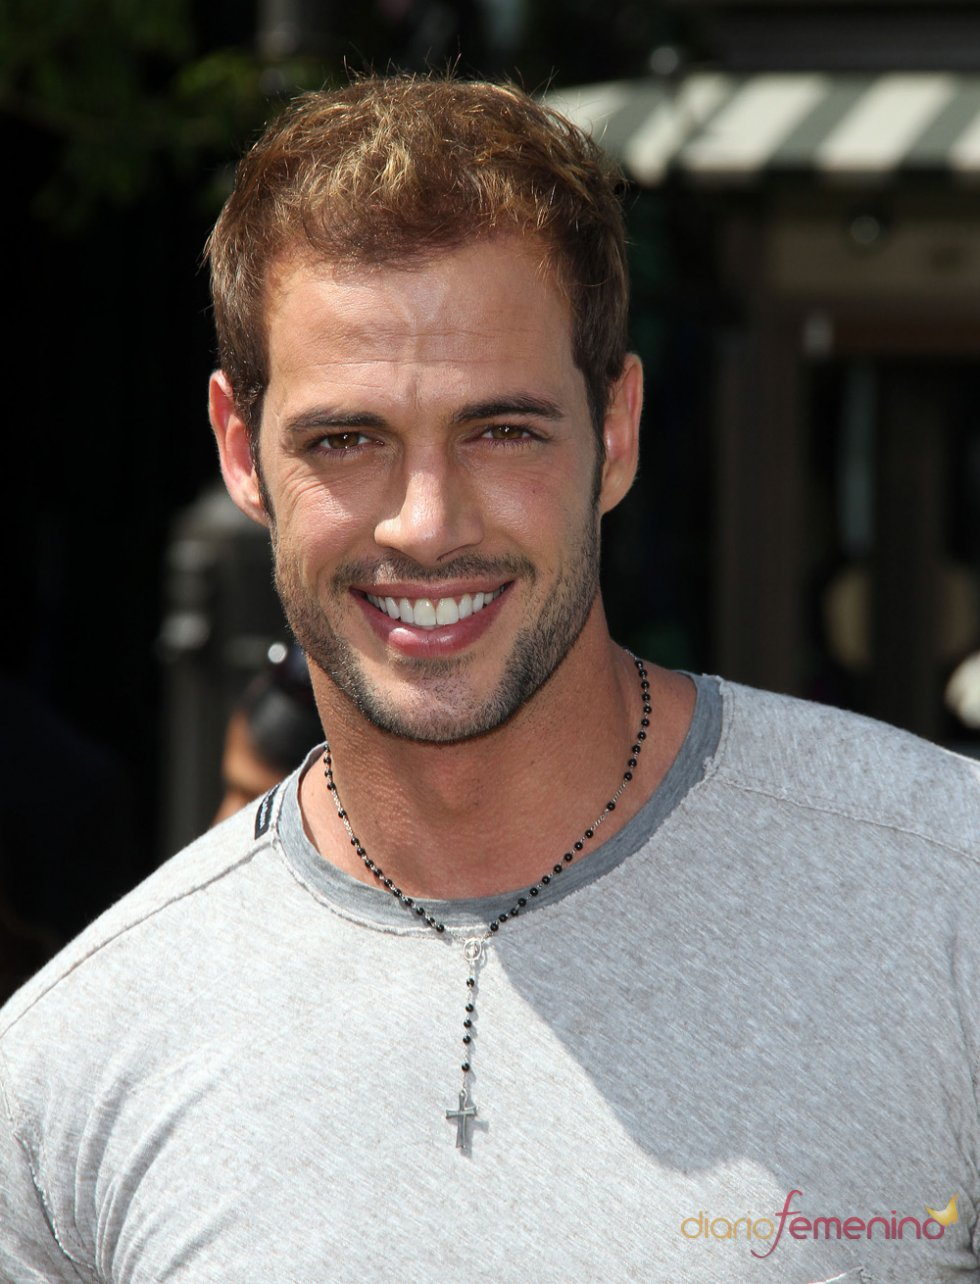 La sonrisa seductora de William Levy